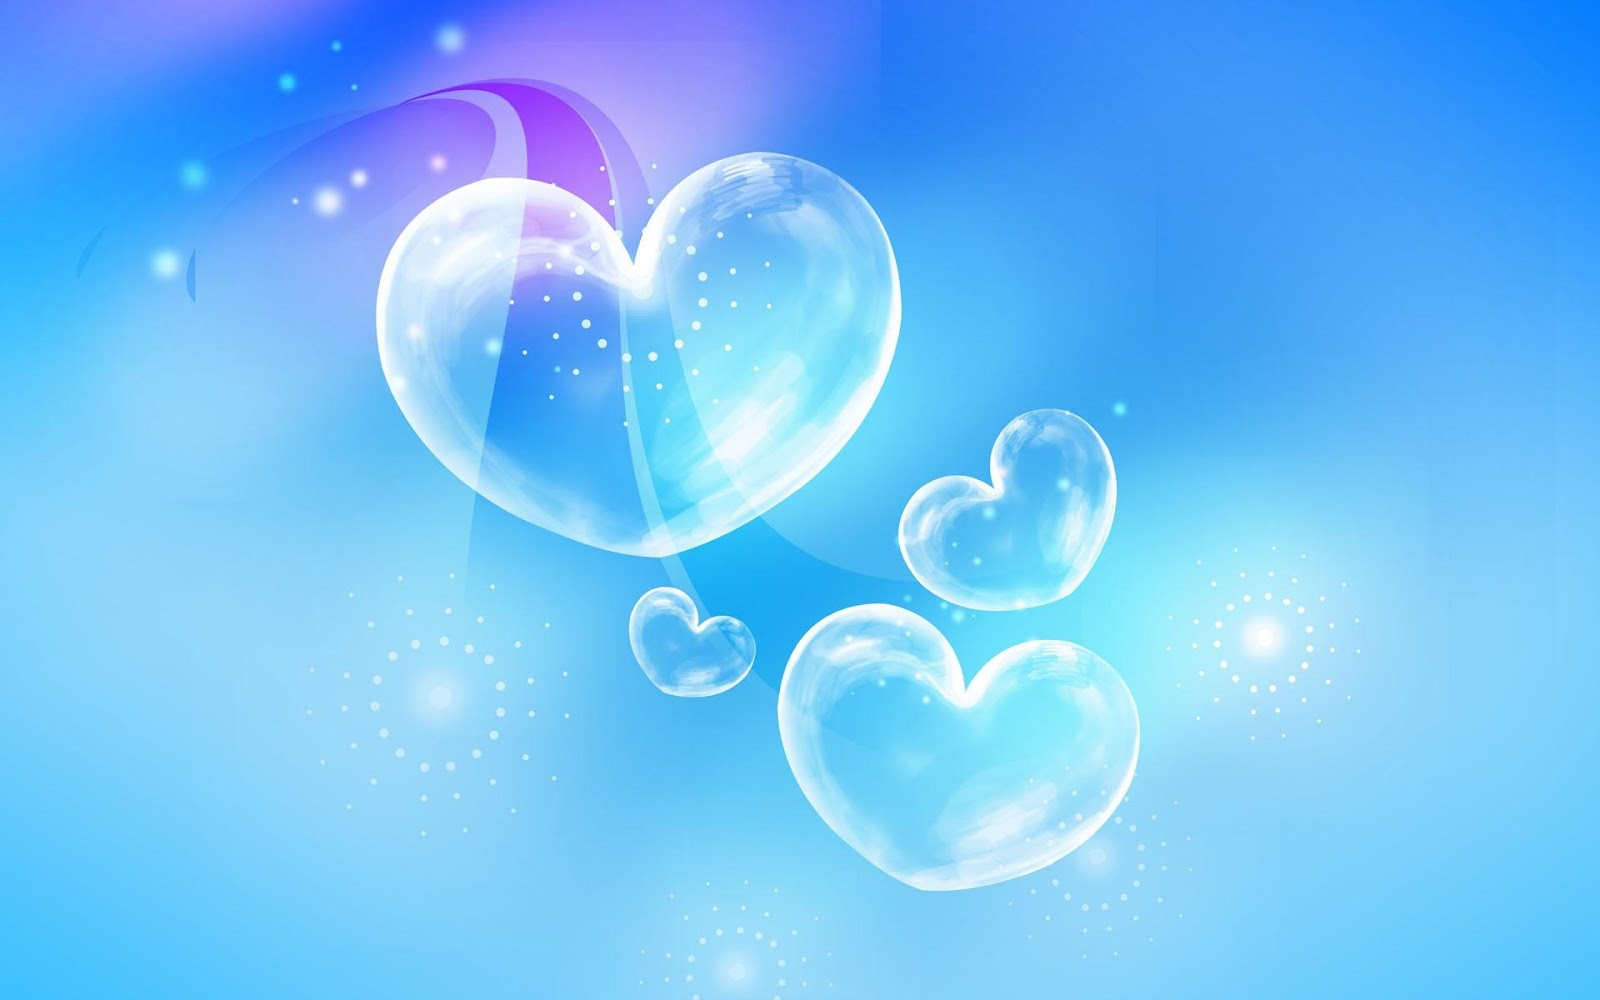 Beautiful Love Wallpapers for Desktop - WallpaperSafari